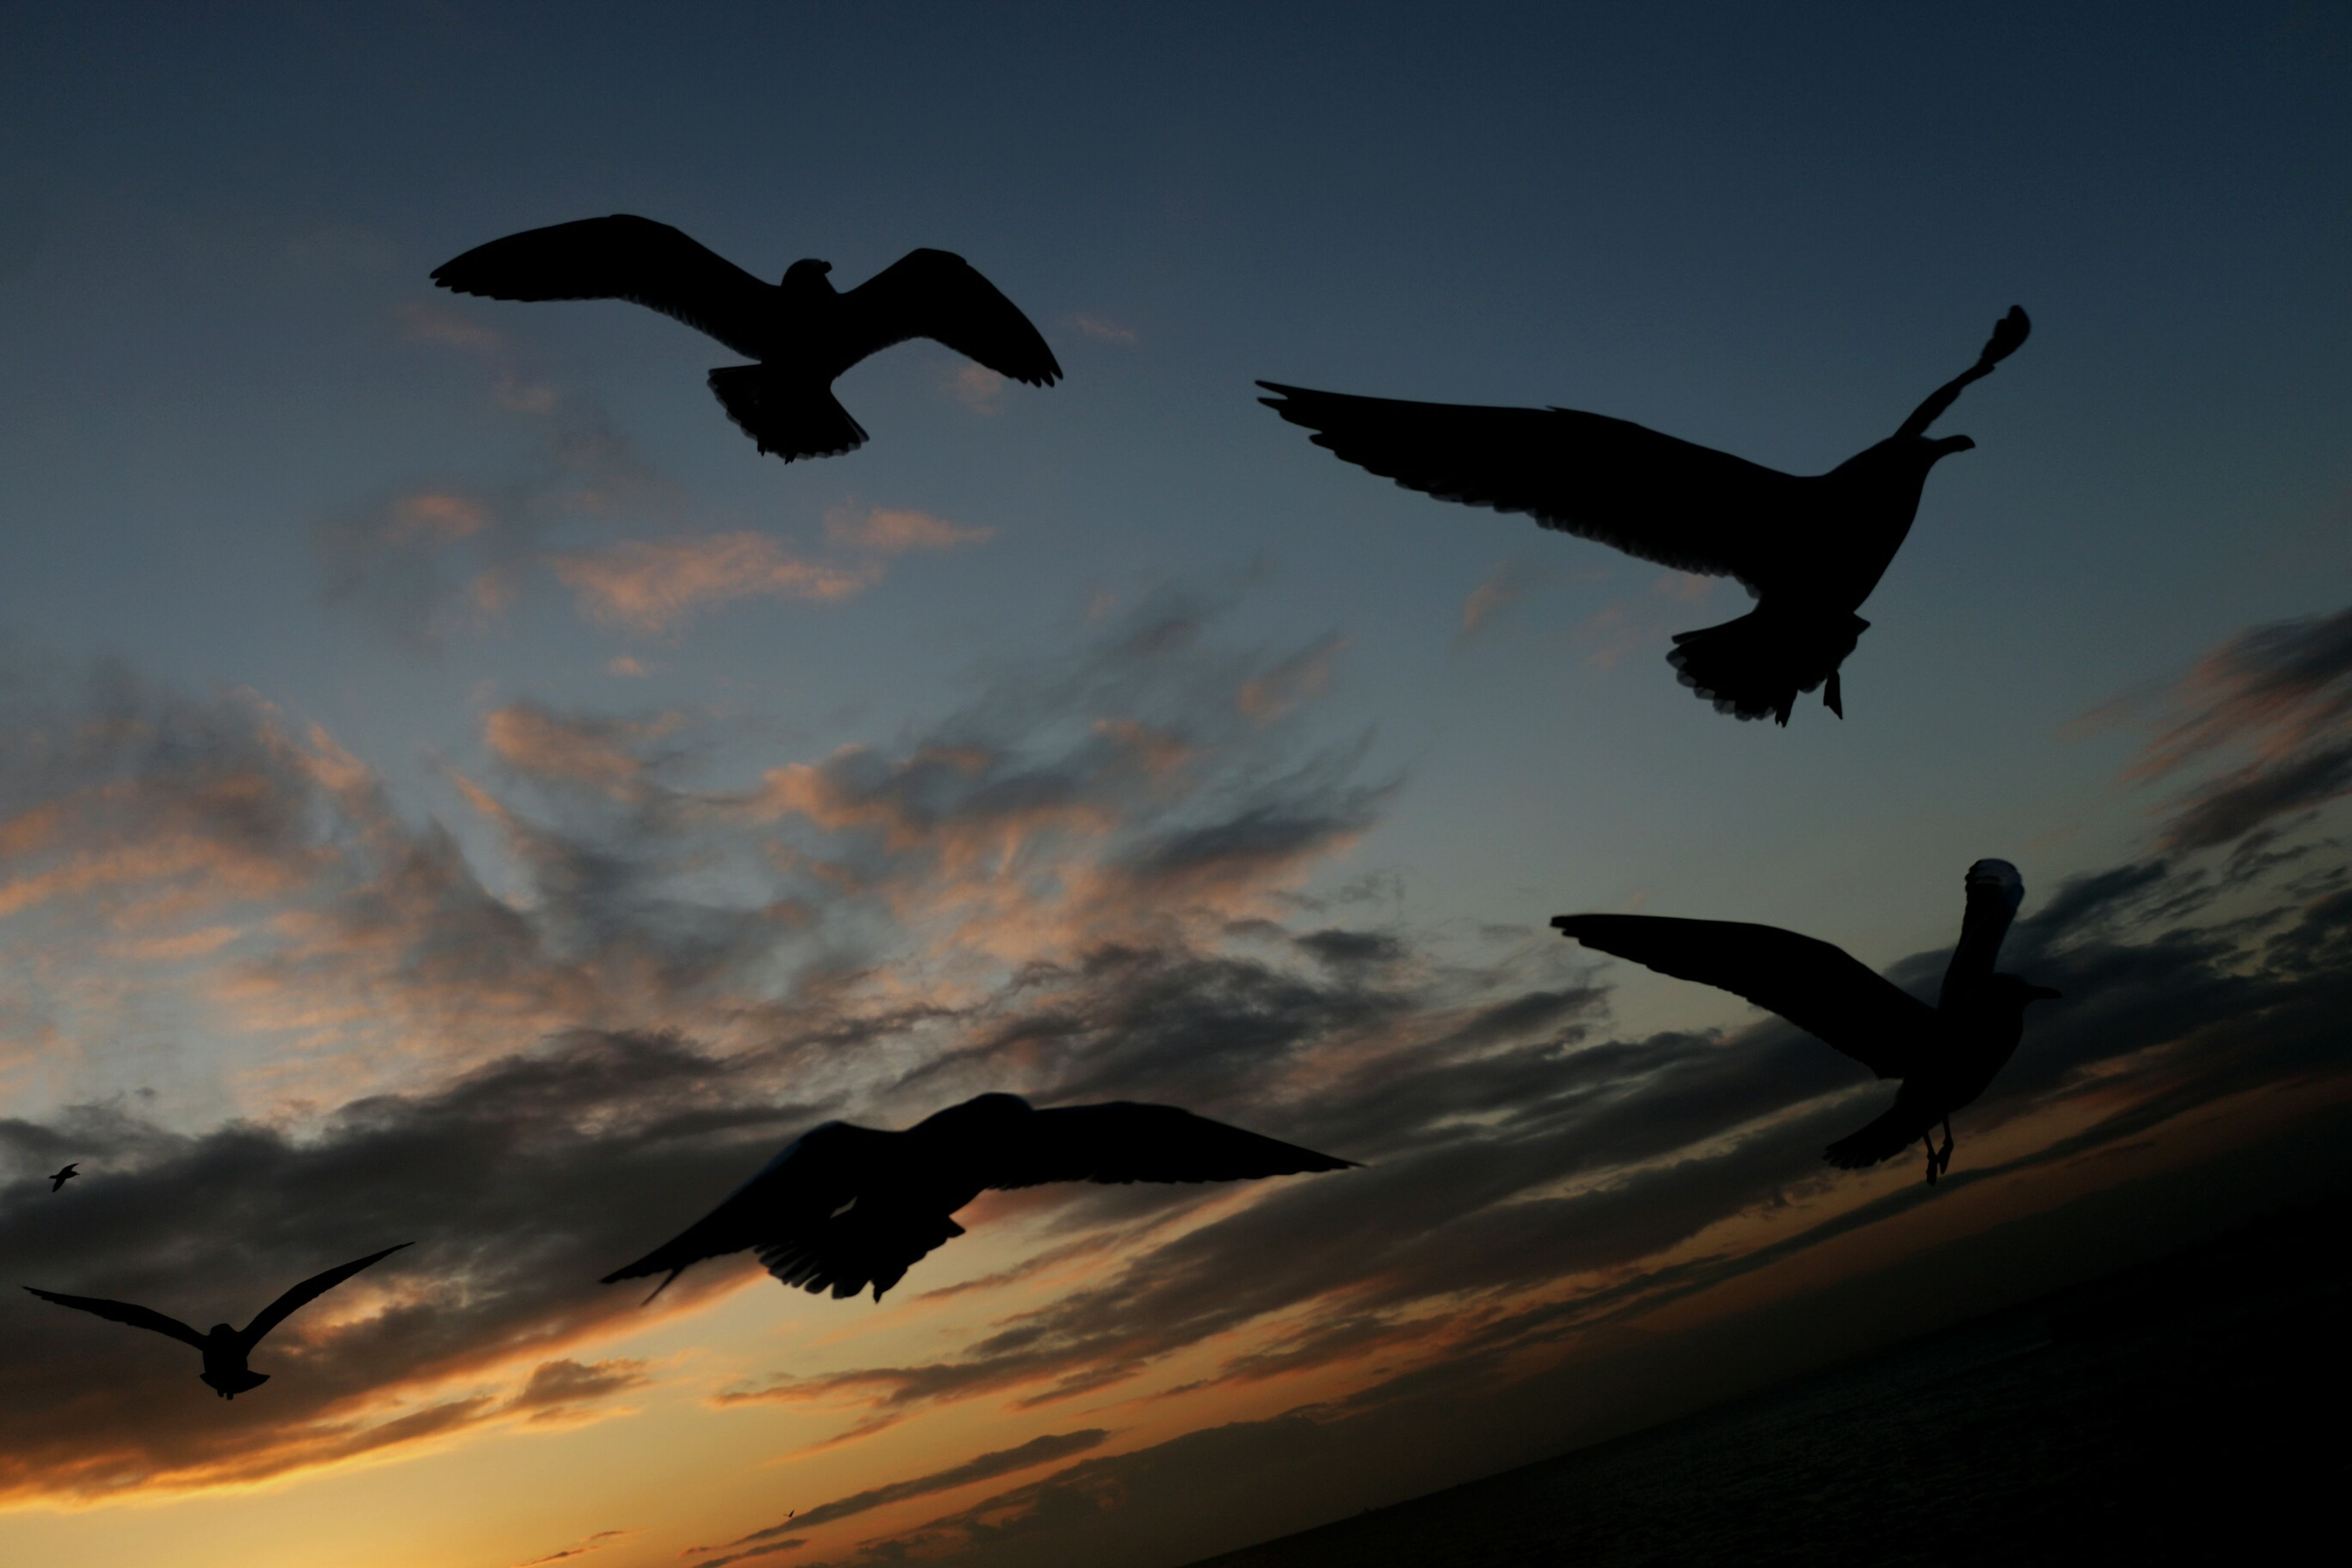 flying, bird, spread wings, animal themes, silhouette, animals in the wild, mid-air, wildlife, sky, low angle view, sunset, cloud - sky, seagull, nature, motion, beauty in nature, cloud, dusk, full length, freedom